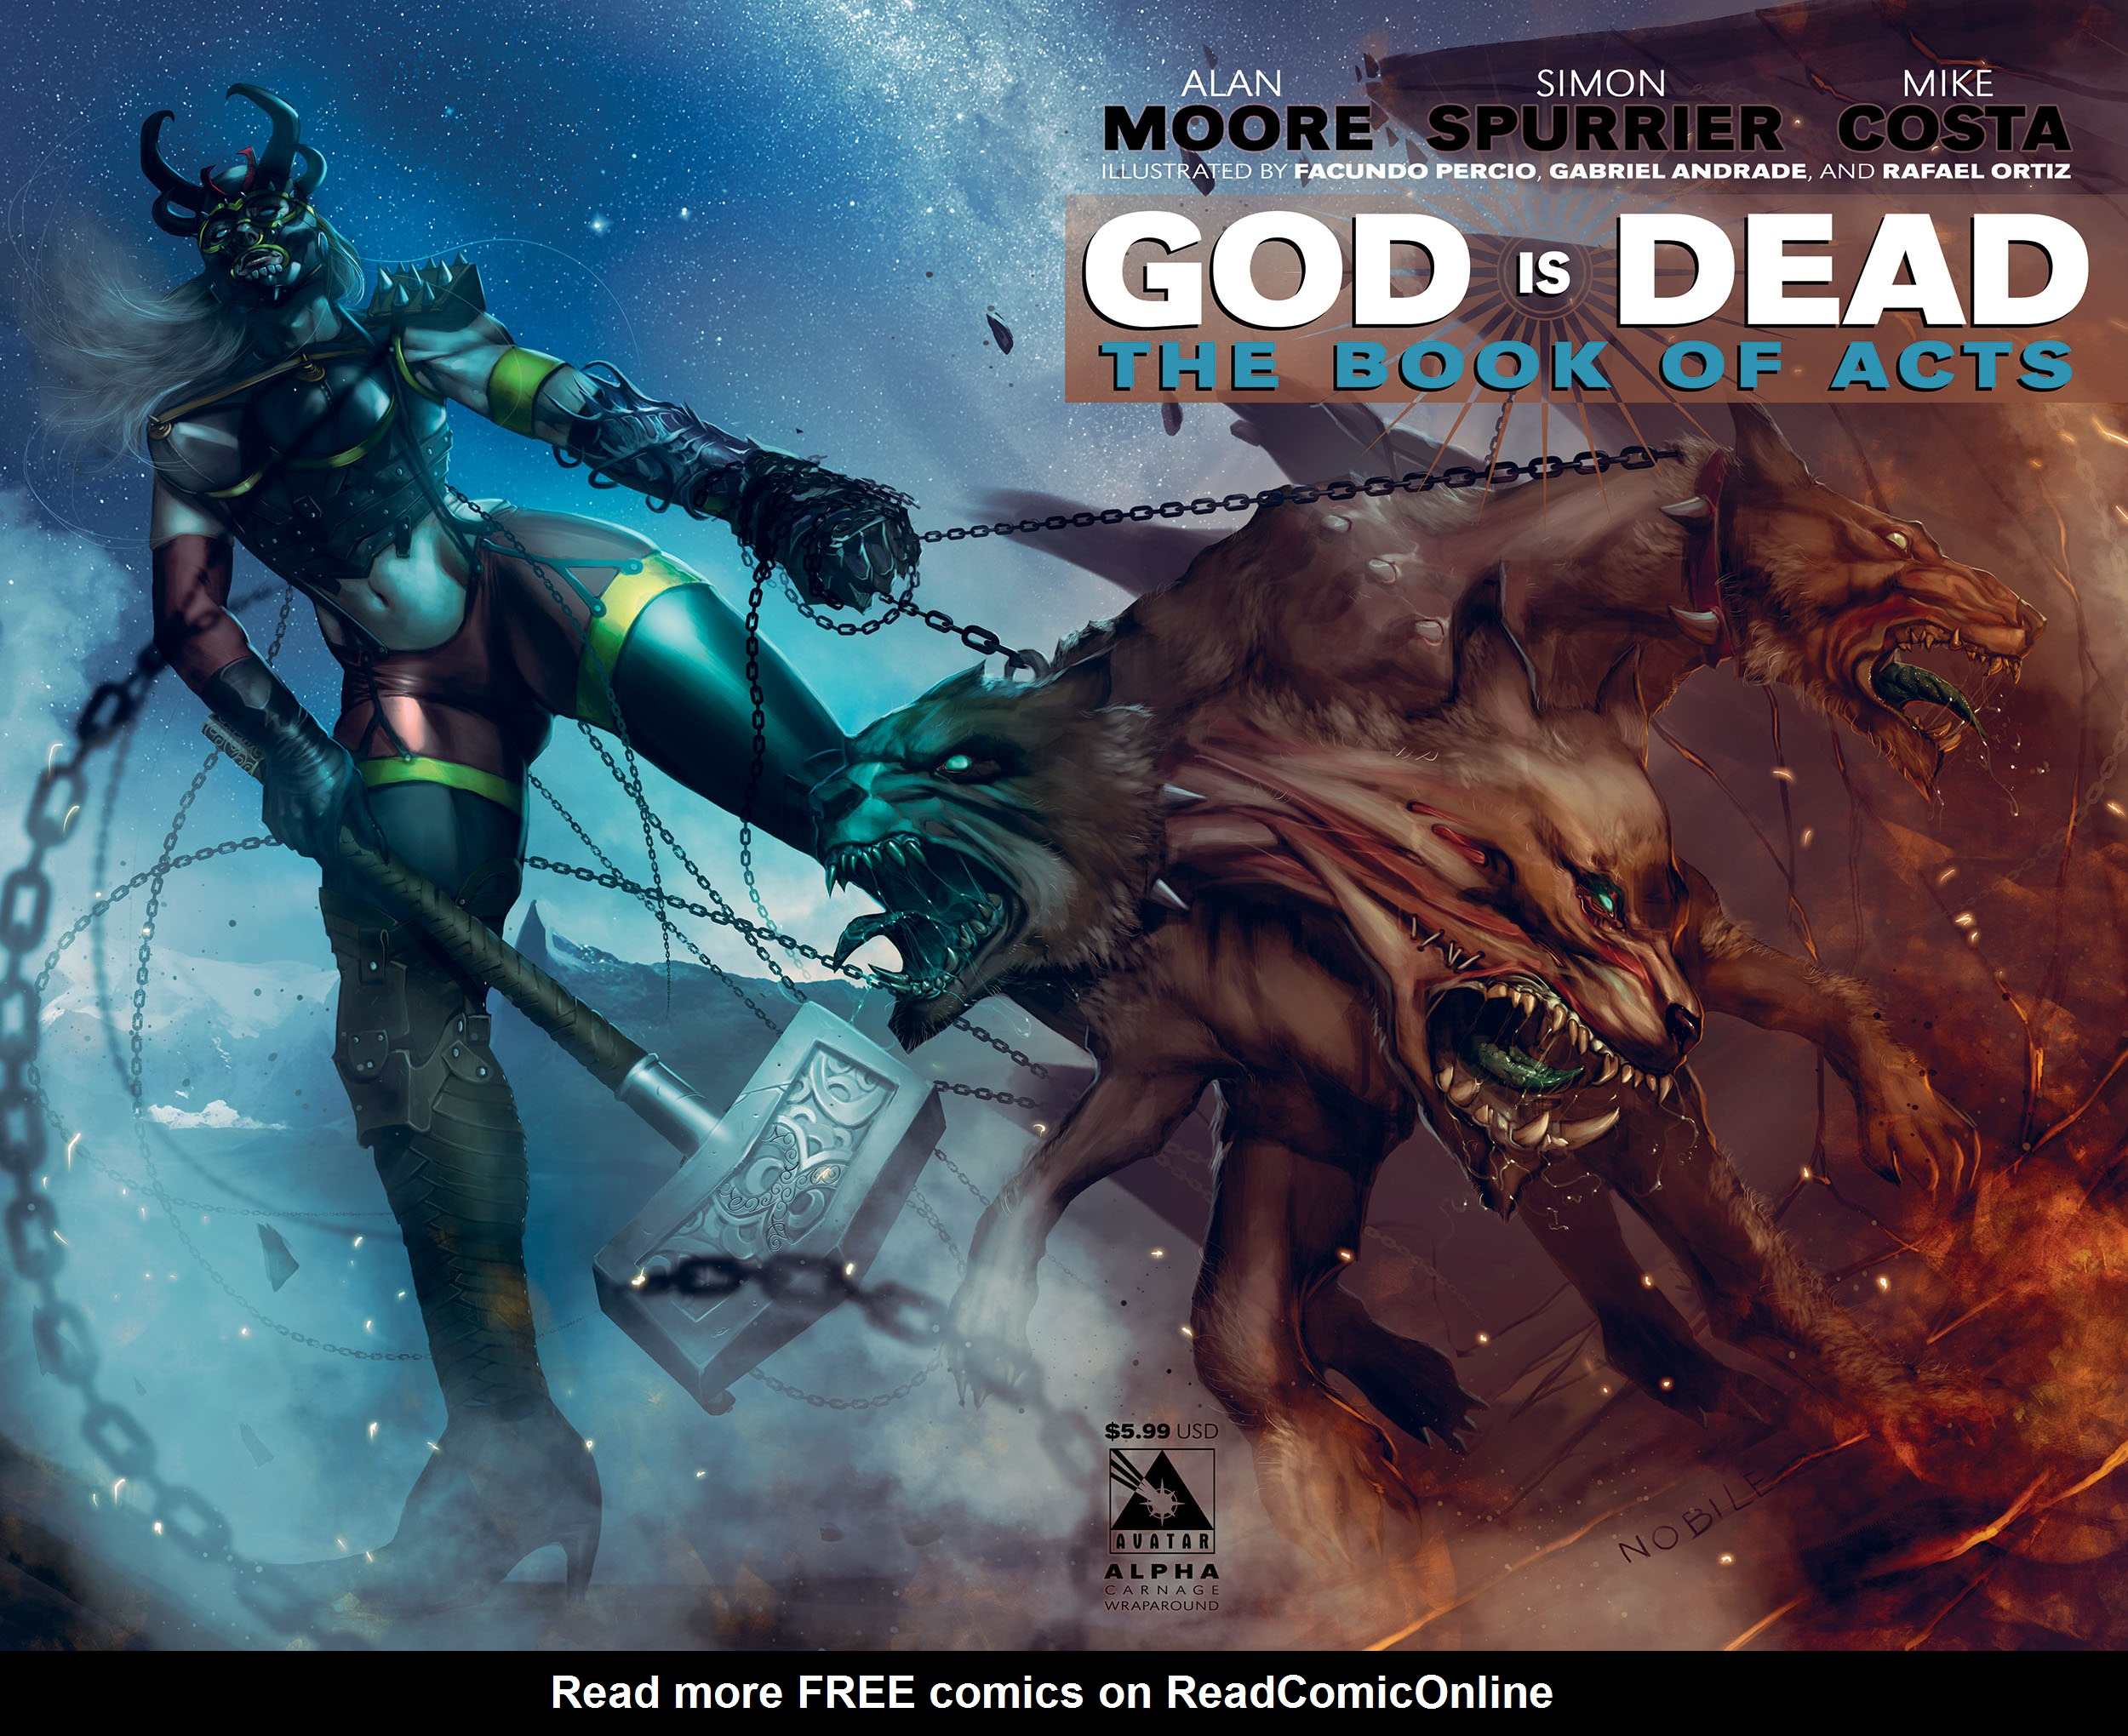 Read online God is Dead: Book of Acts comic -  Issue # Alpha - 8